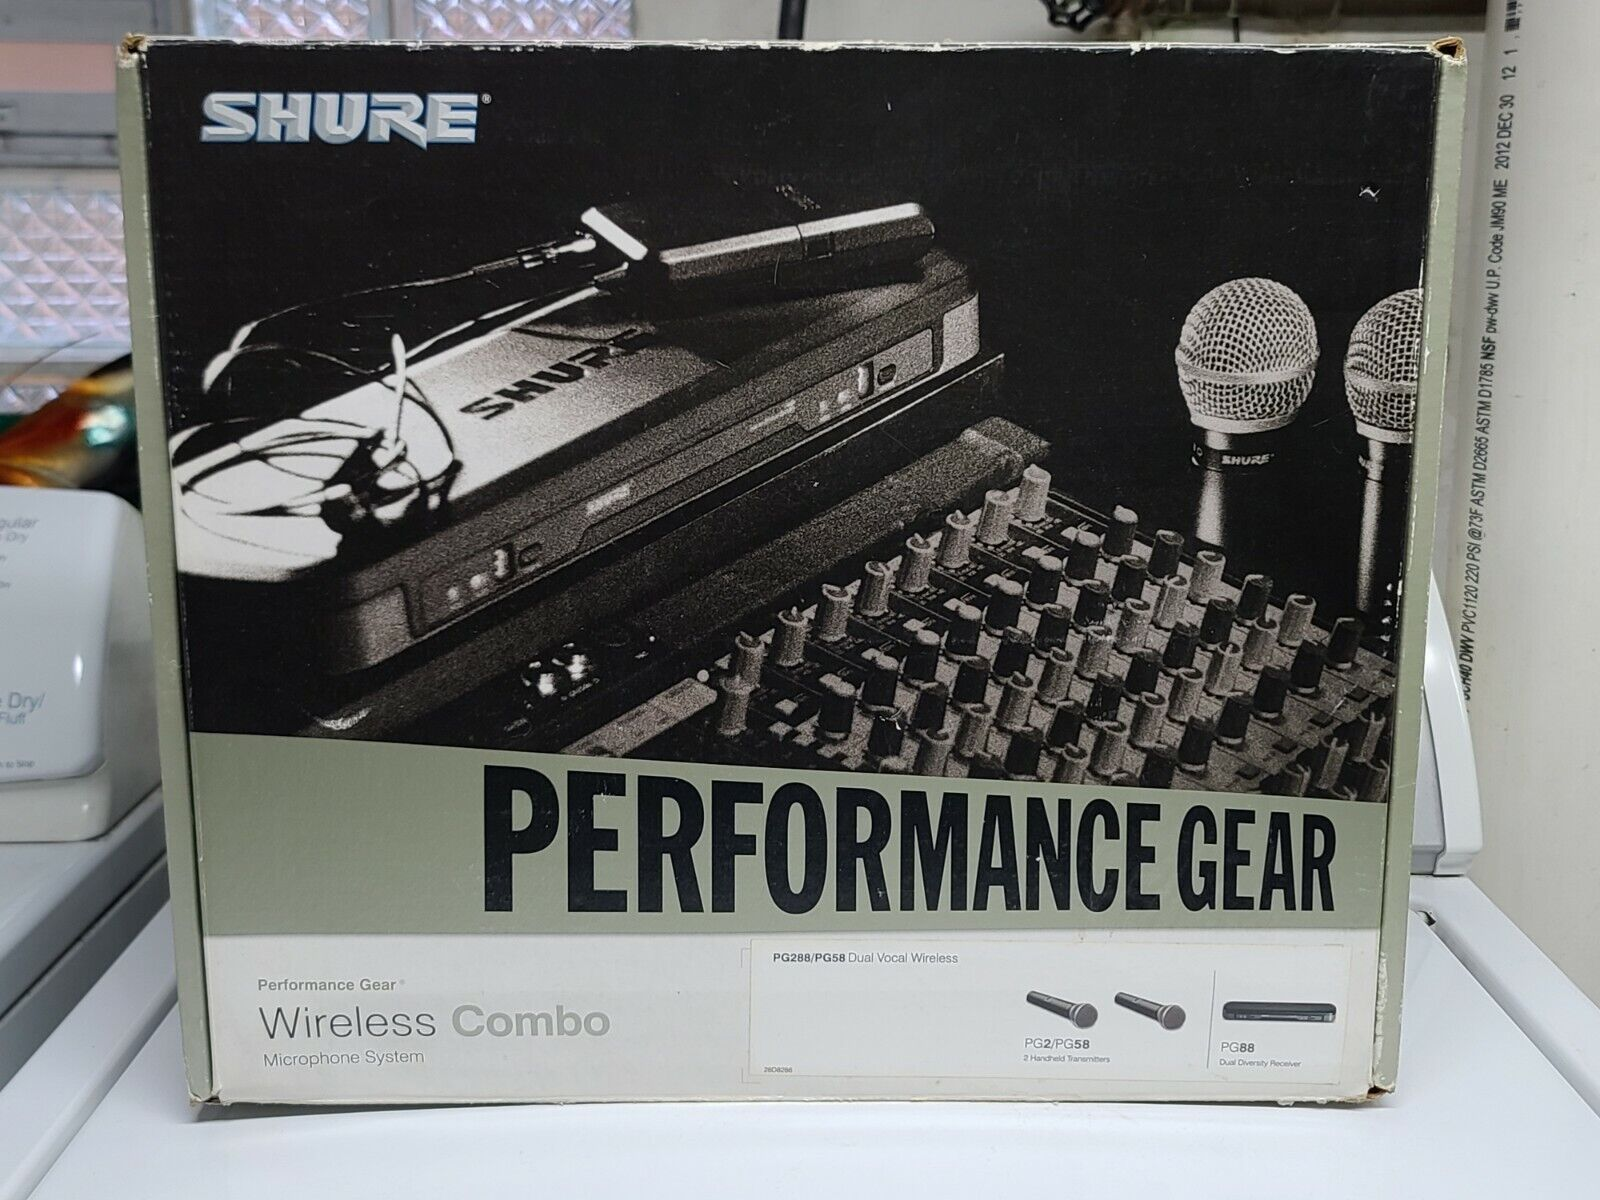 Shure Wireless Combo PG2/PG58 Handheld Transmitter With PG88 Receiver - $250.00